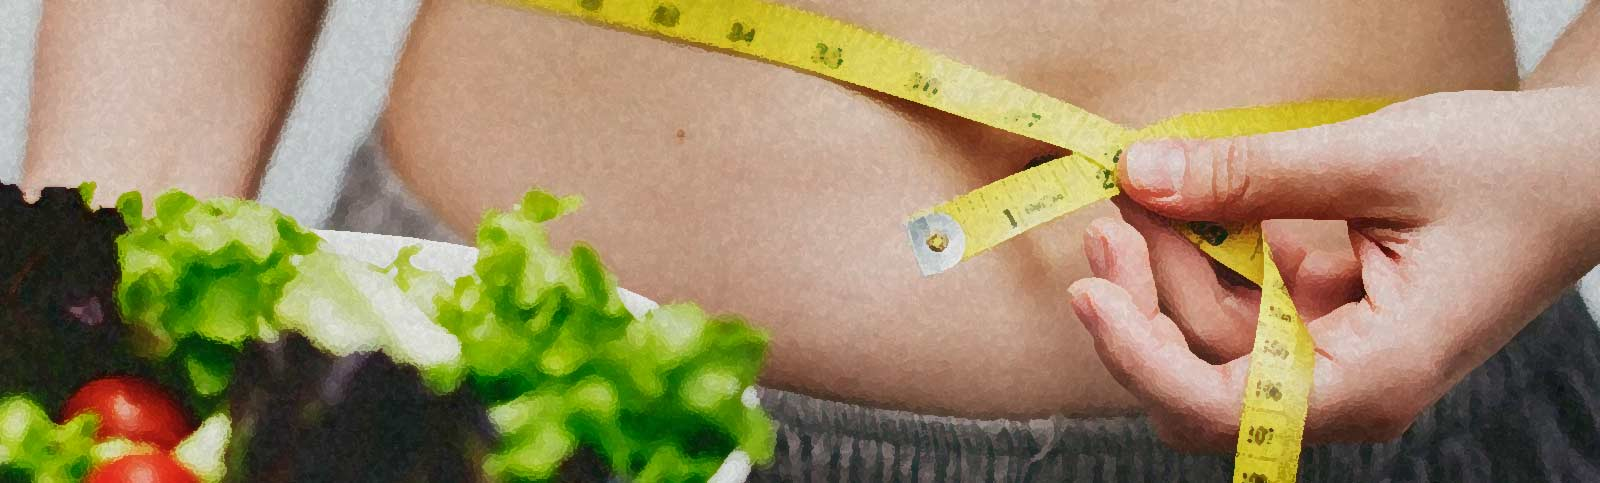 Reasons Why Women Struggle to Lose Weight